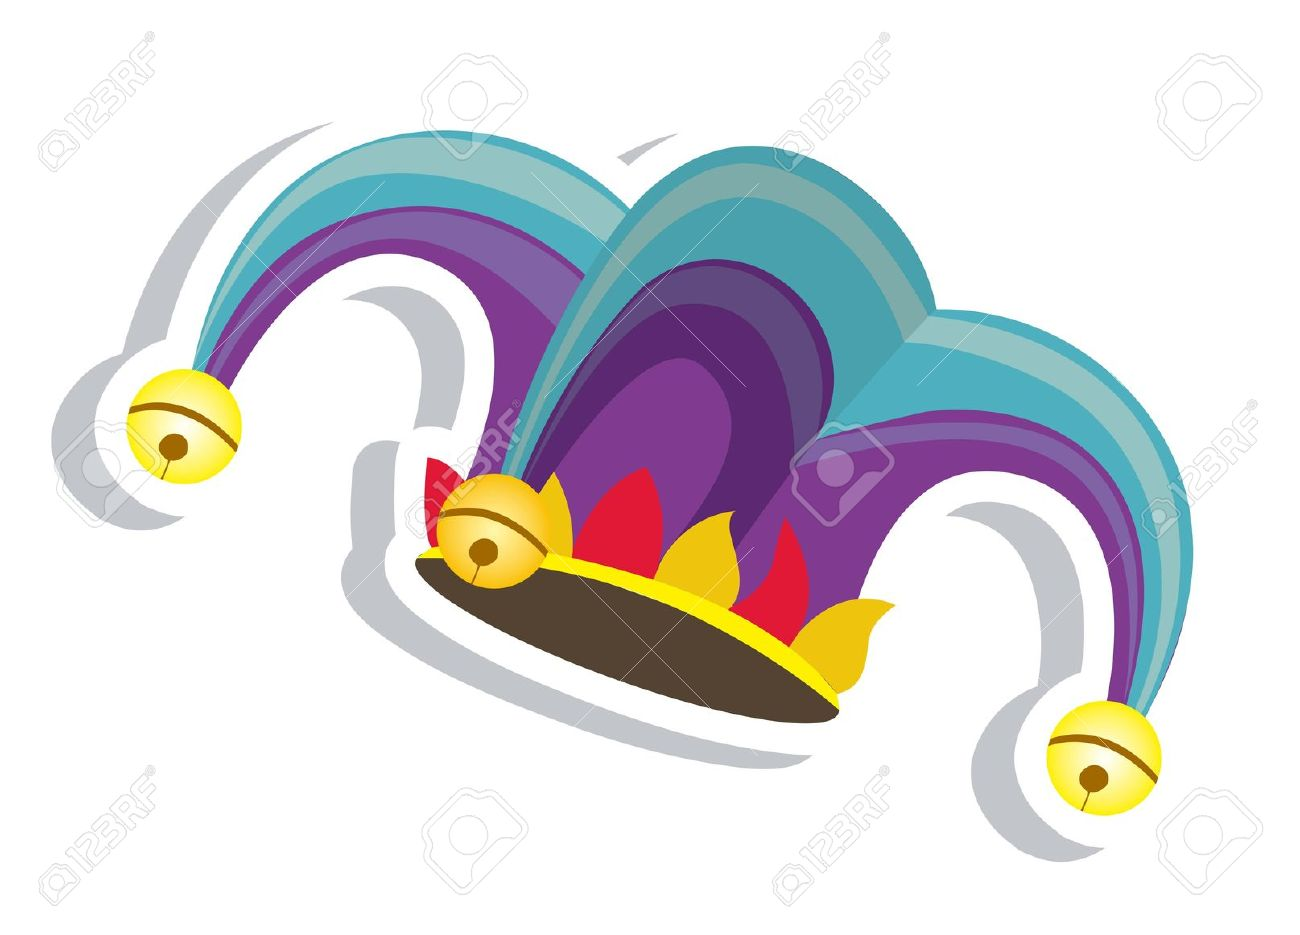 Colorful fool clipart cute clip library stock Colorful jester hat clipart cute - ClipartFest clip library stock